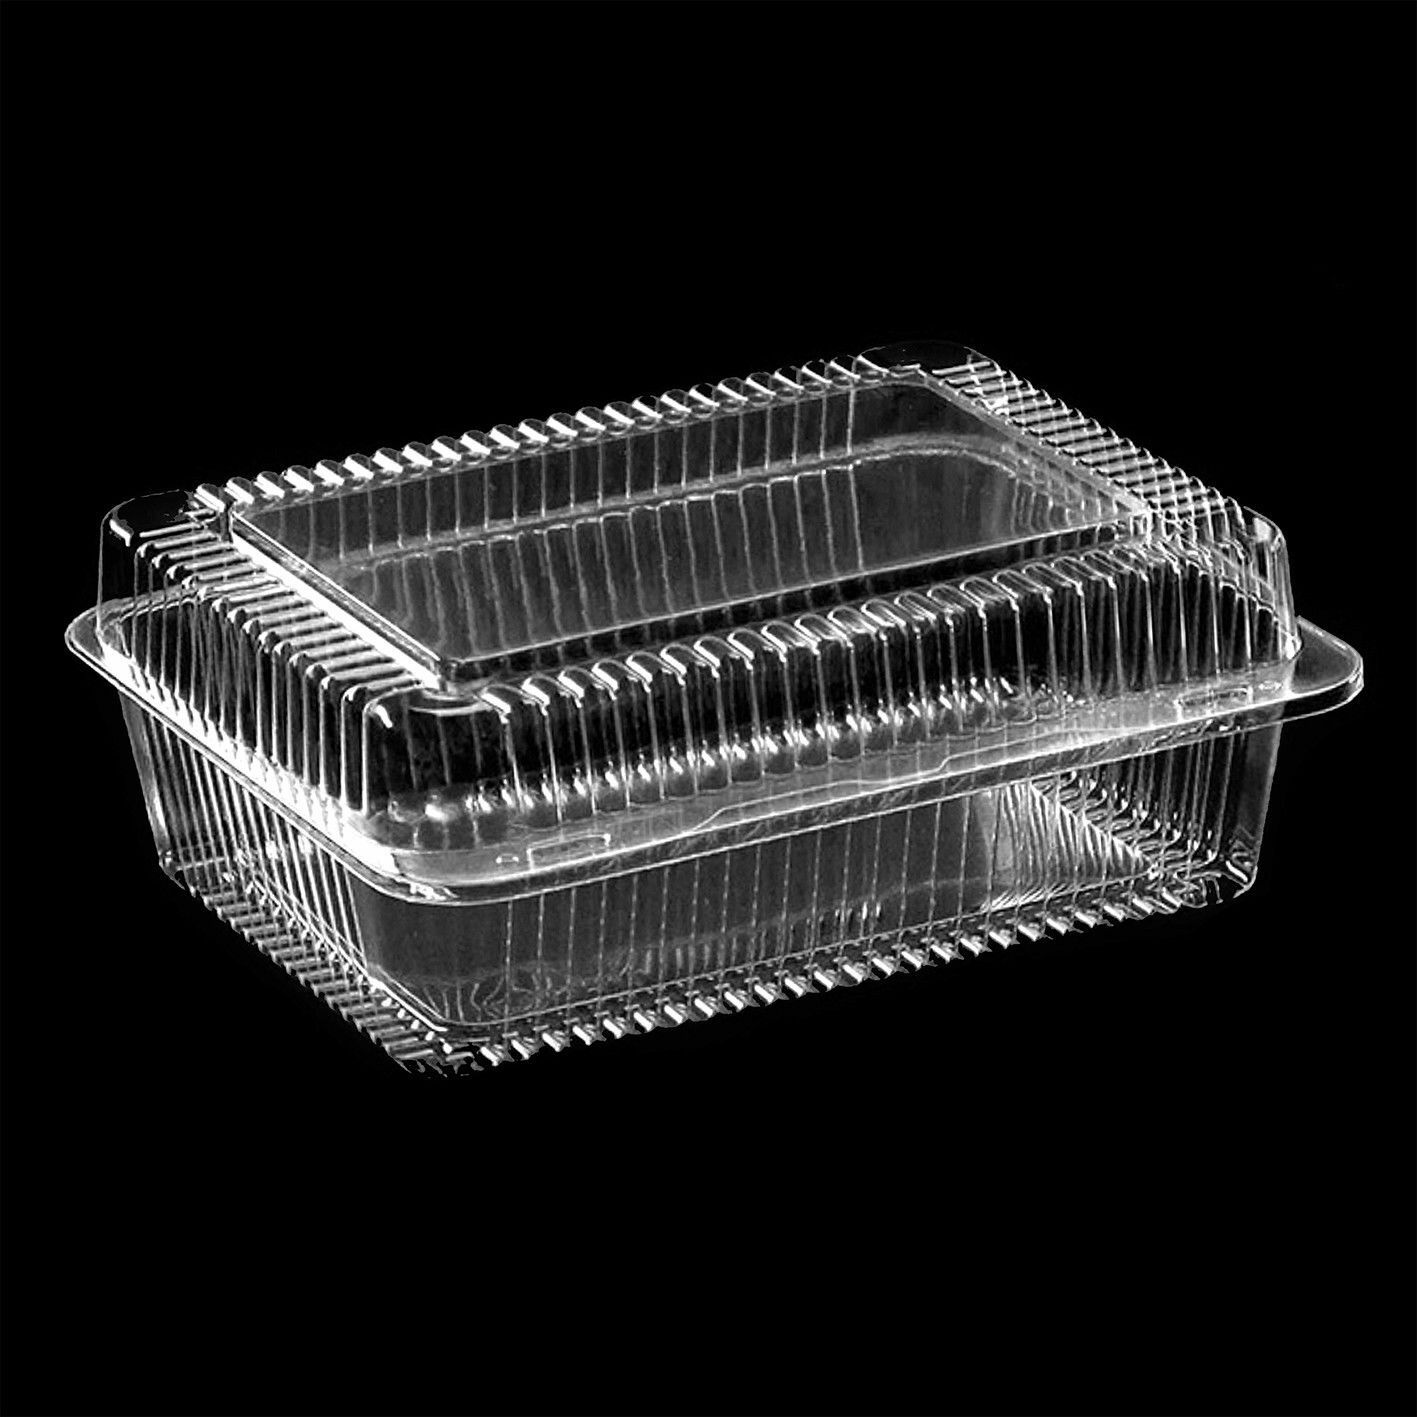 10-300 Plastic Disposable Clear Boxes for Food CAKE Größe- Größe- Größe- 230 x 160 x 97mm - K80 50fe58